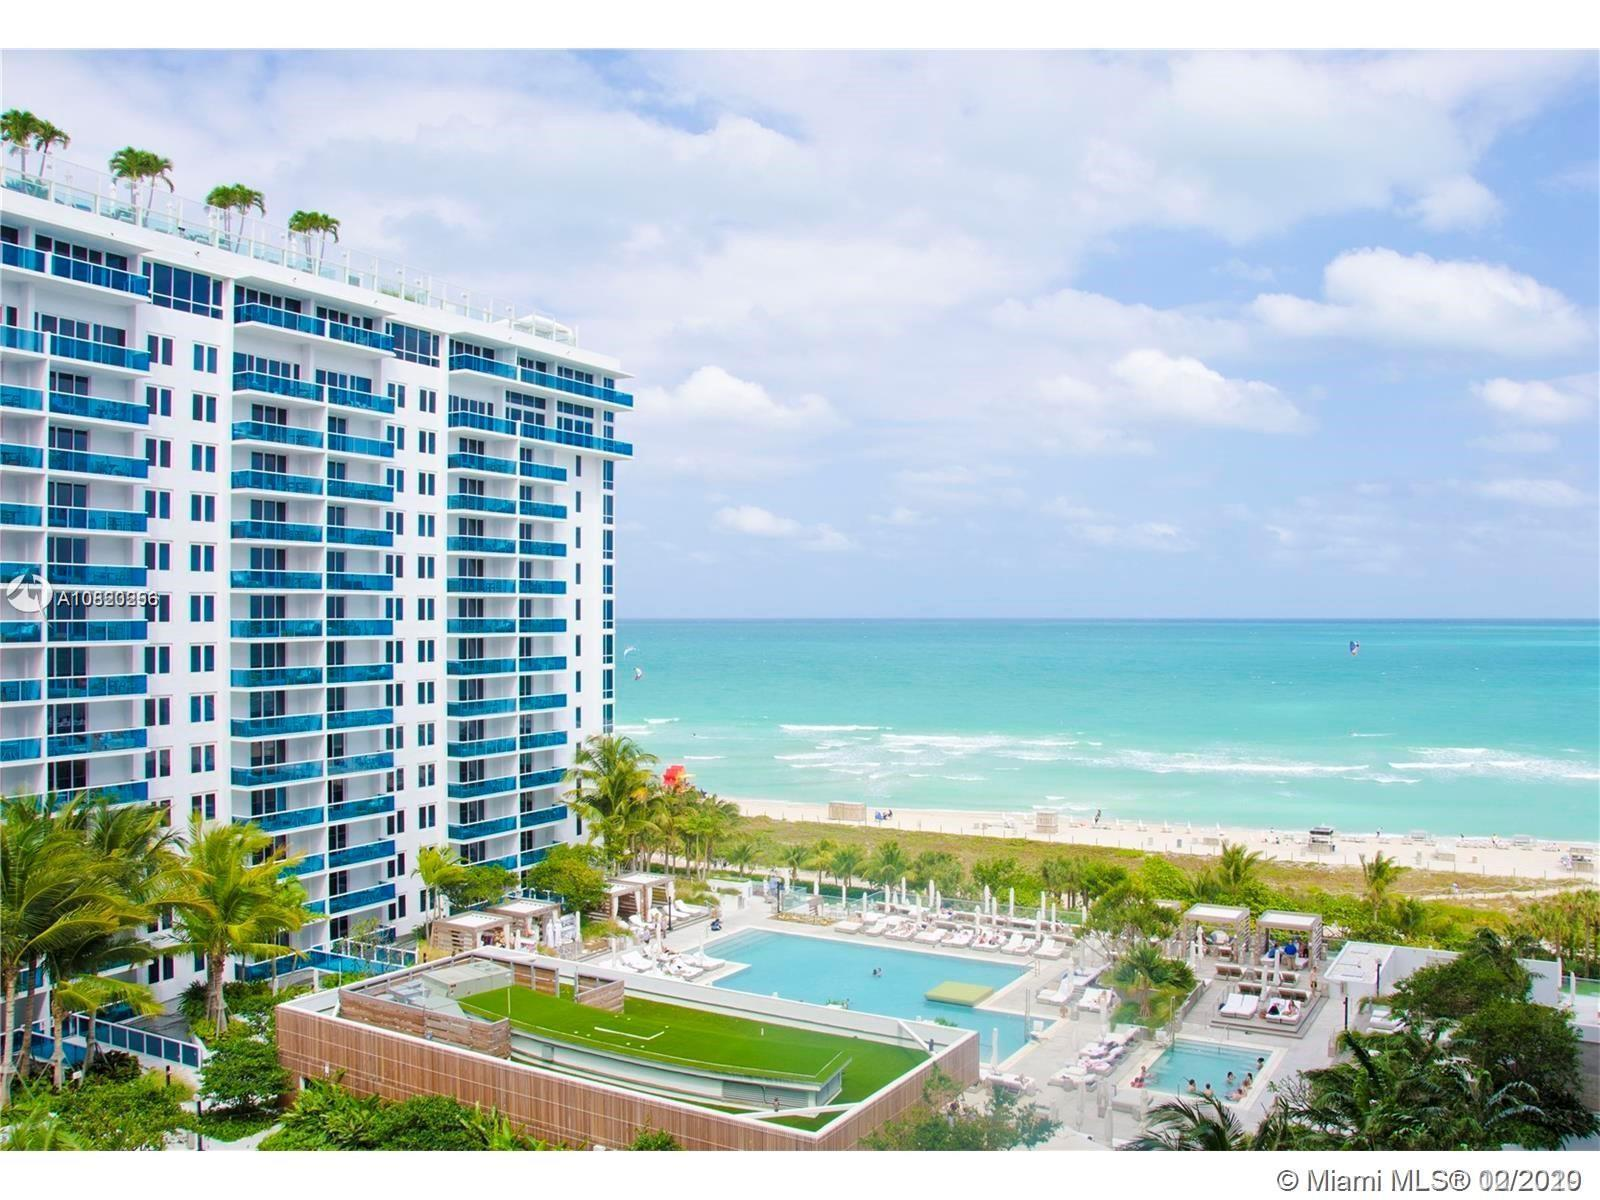 DIRECT OCEAN AND POOL VIEWS FROM THIS LARGE 1 BEDROOM LOCATED AT THE LARGEST OCEANFRONT RESORT IN SO